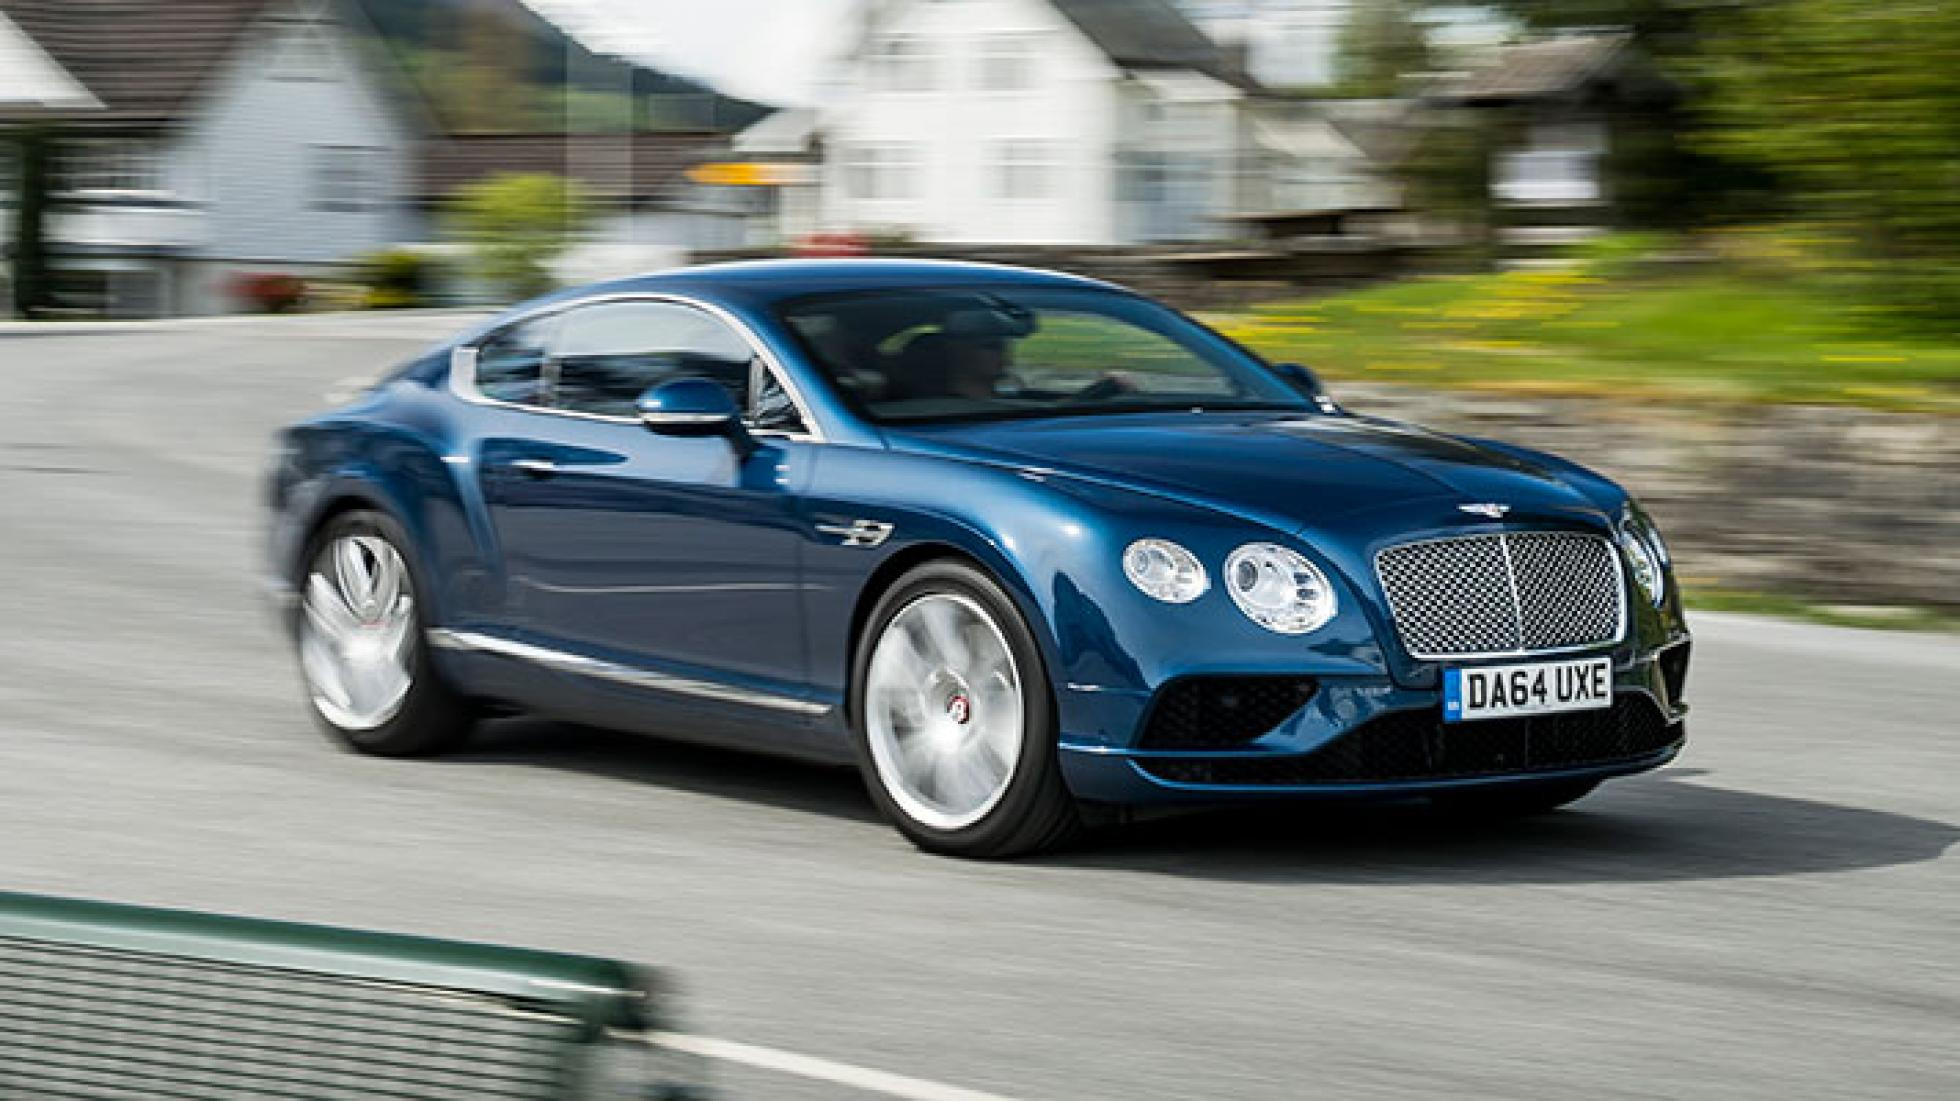 Bentley Continental GT is one of the most technologically advanced vehicles